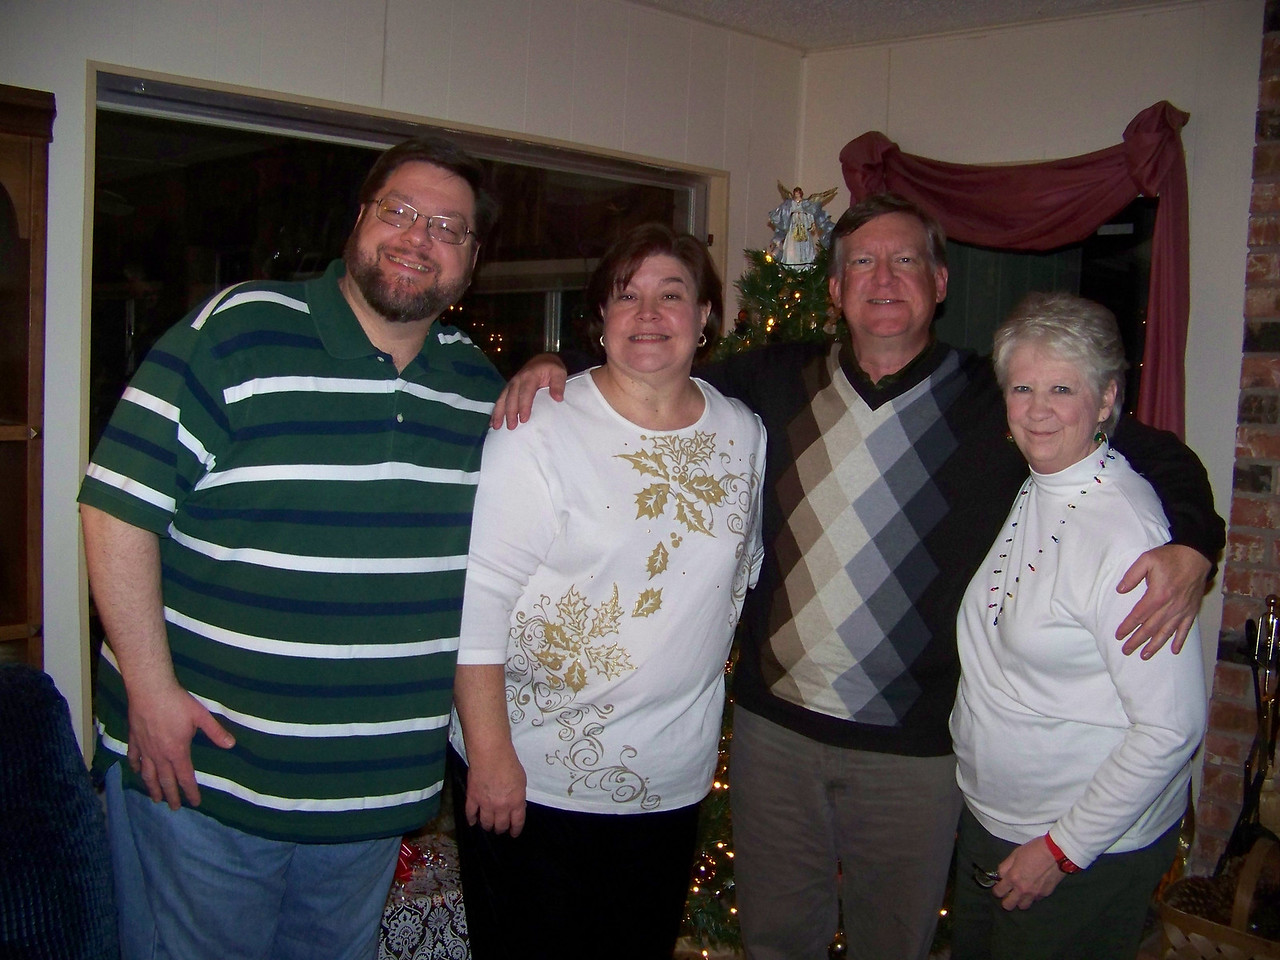 Jon, Wendy, Mark and our newest sibling Sheri.